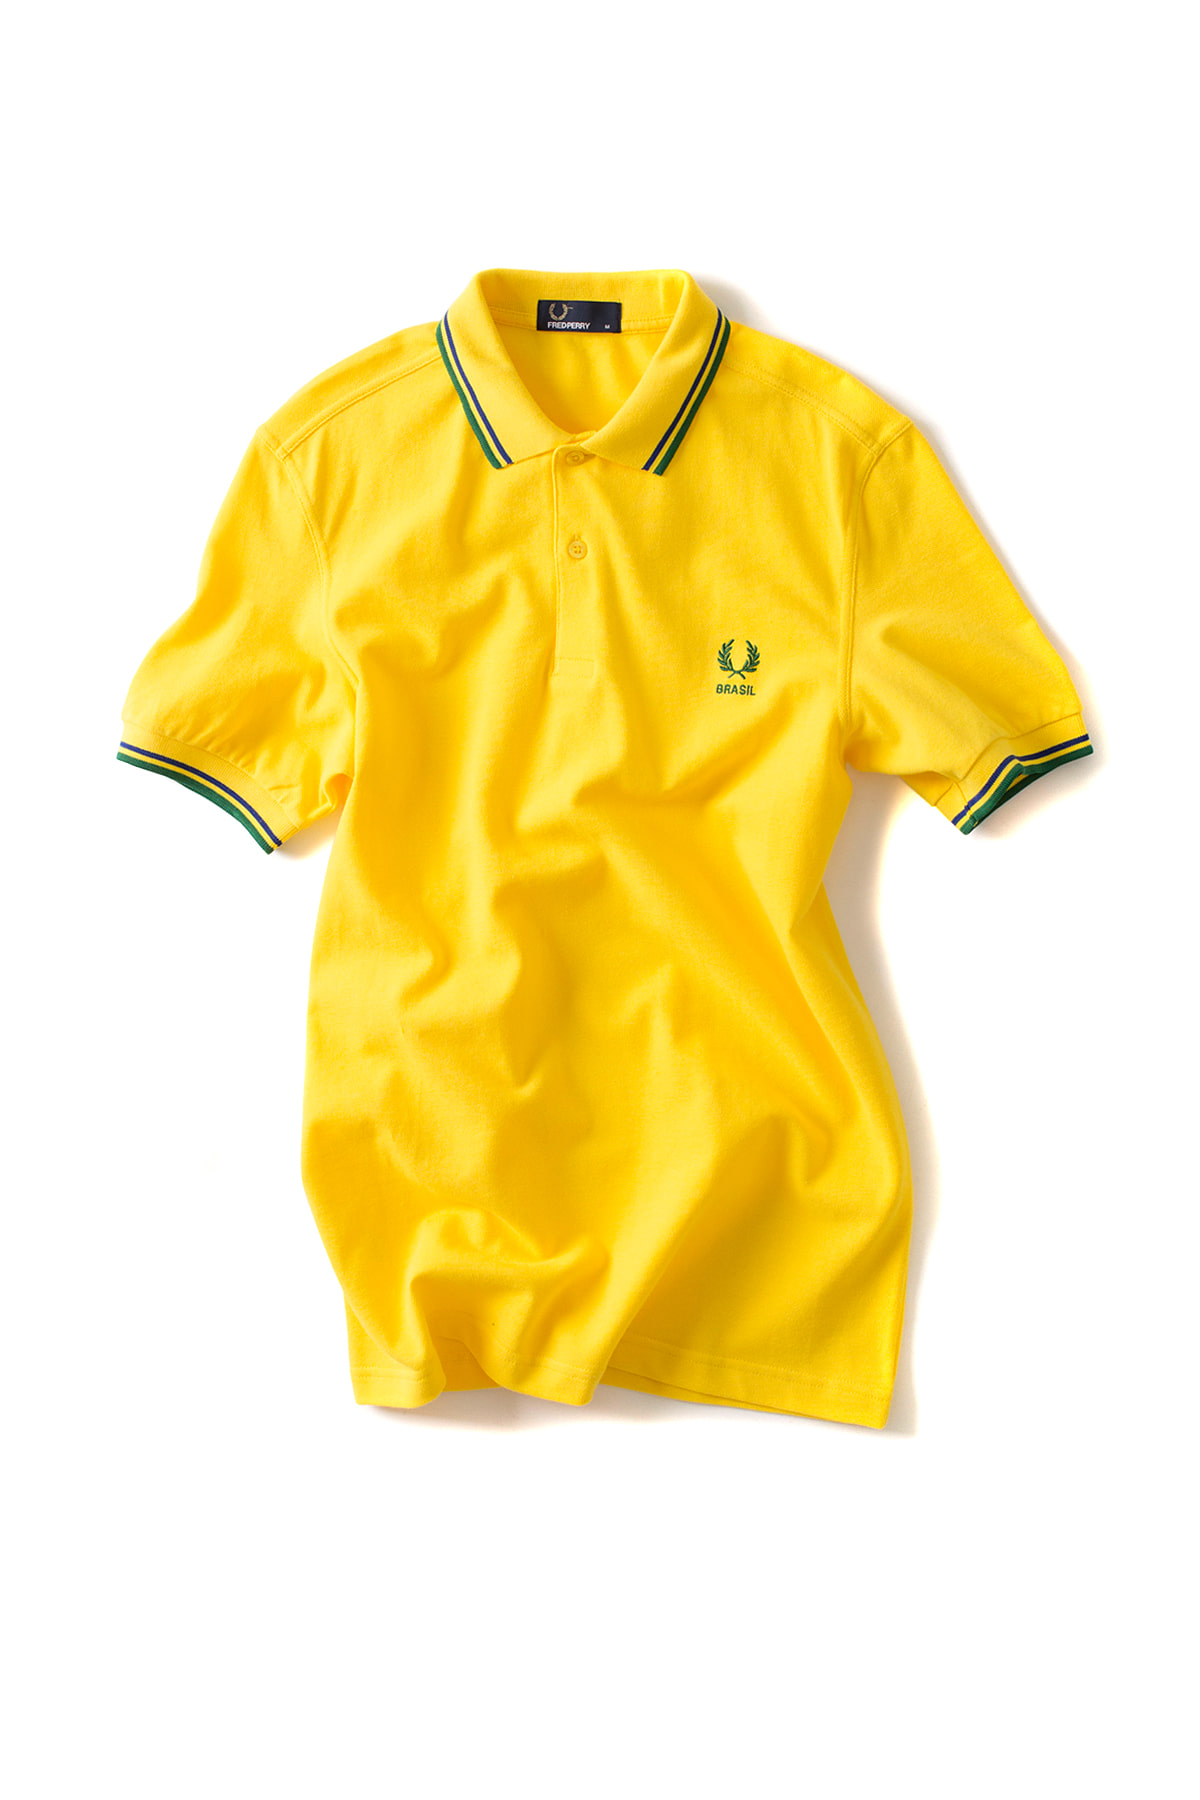 FRED PERRY : The Country Shirt BRAZIL (Yellow)